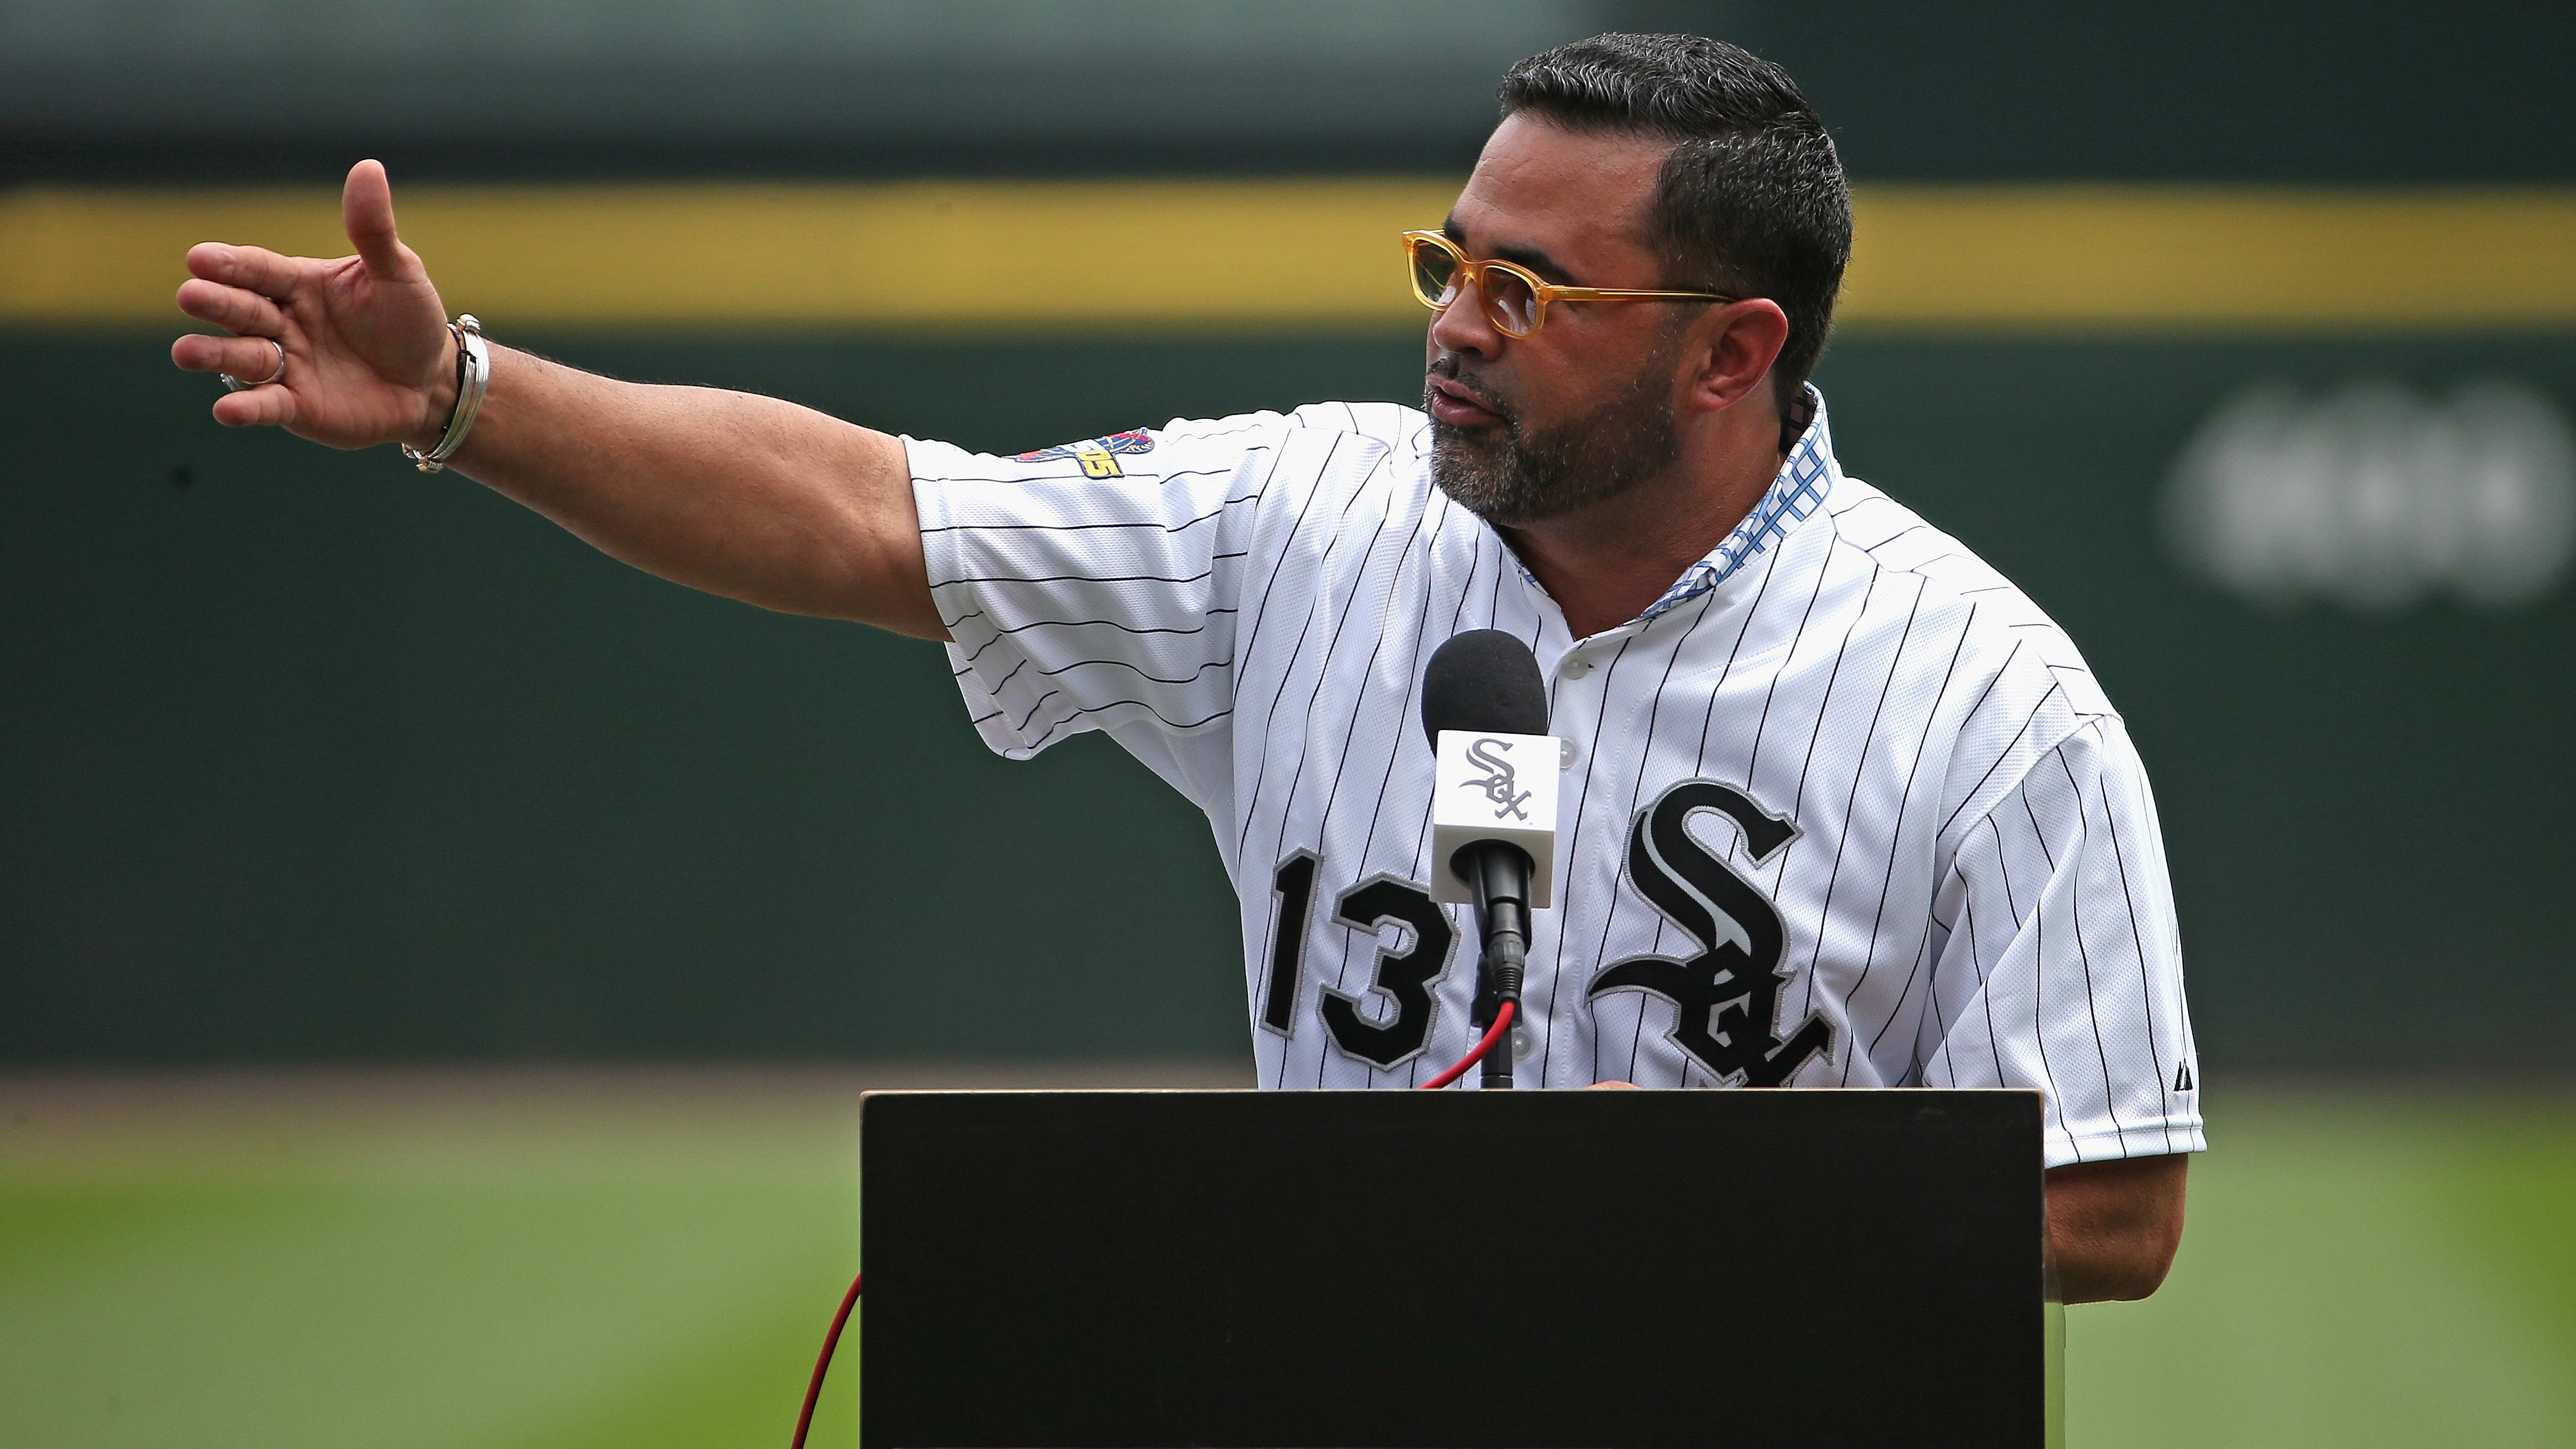 CHICAGO, IL - JULY 18:  Former manager Ozzie Gullien of the Chicago White Sox speaks to the crowd during a ceremony honoring the 10th anniversary of the 2005 World Series Champion Chicago White Sox team before a game against the Kansas City Royals at U.S. Cellular Field on July 18, 2015 in Chicago, Illinois.  (Photo by Jonathan Daniel/Getty Images)